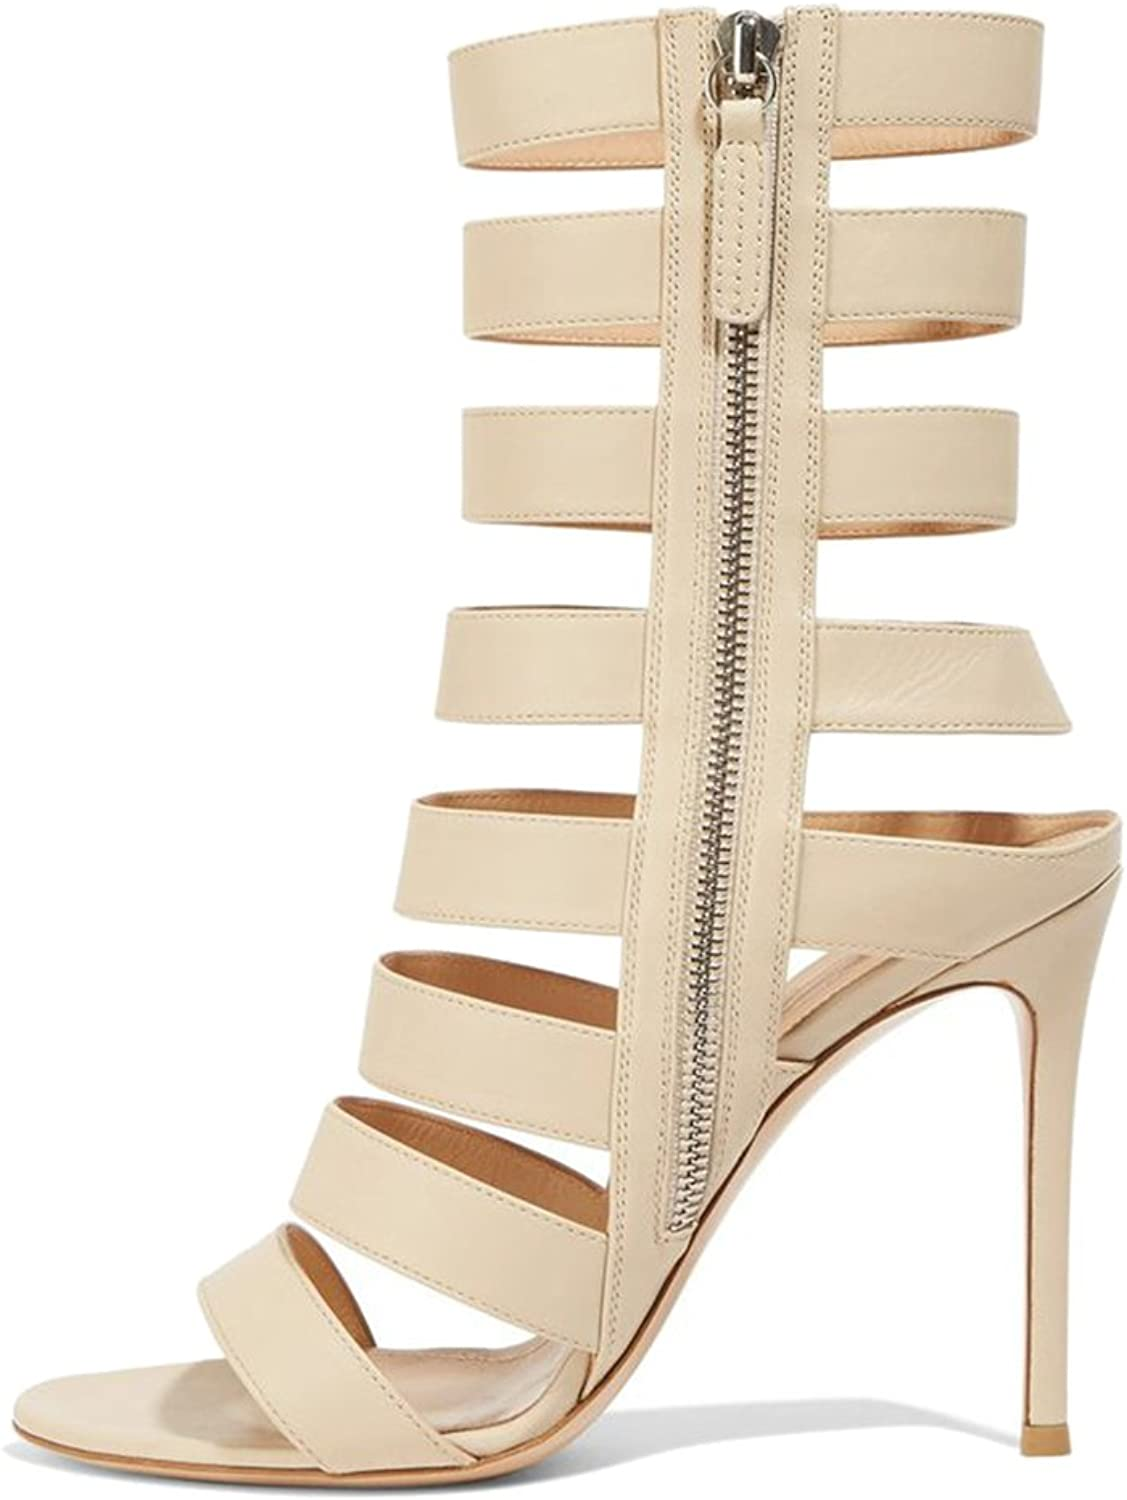 WHL.LL Cross Hollow Sandals for Woman Sandals Beige White High Heel Roman shoes Sexy Stiletto shoes Heeled Sandals Open Toe Sandals(Heel Height  11-13cm)